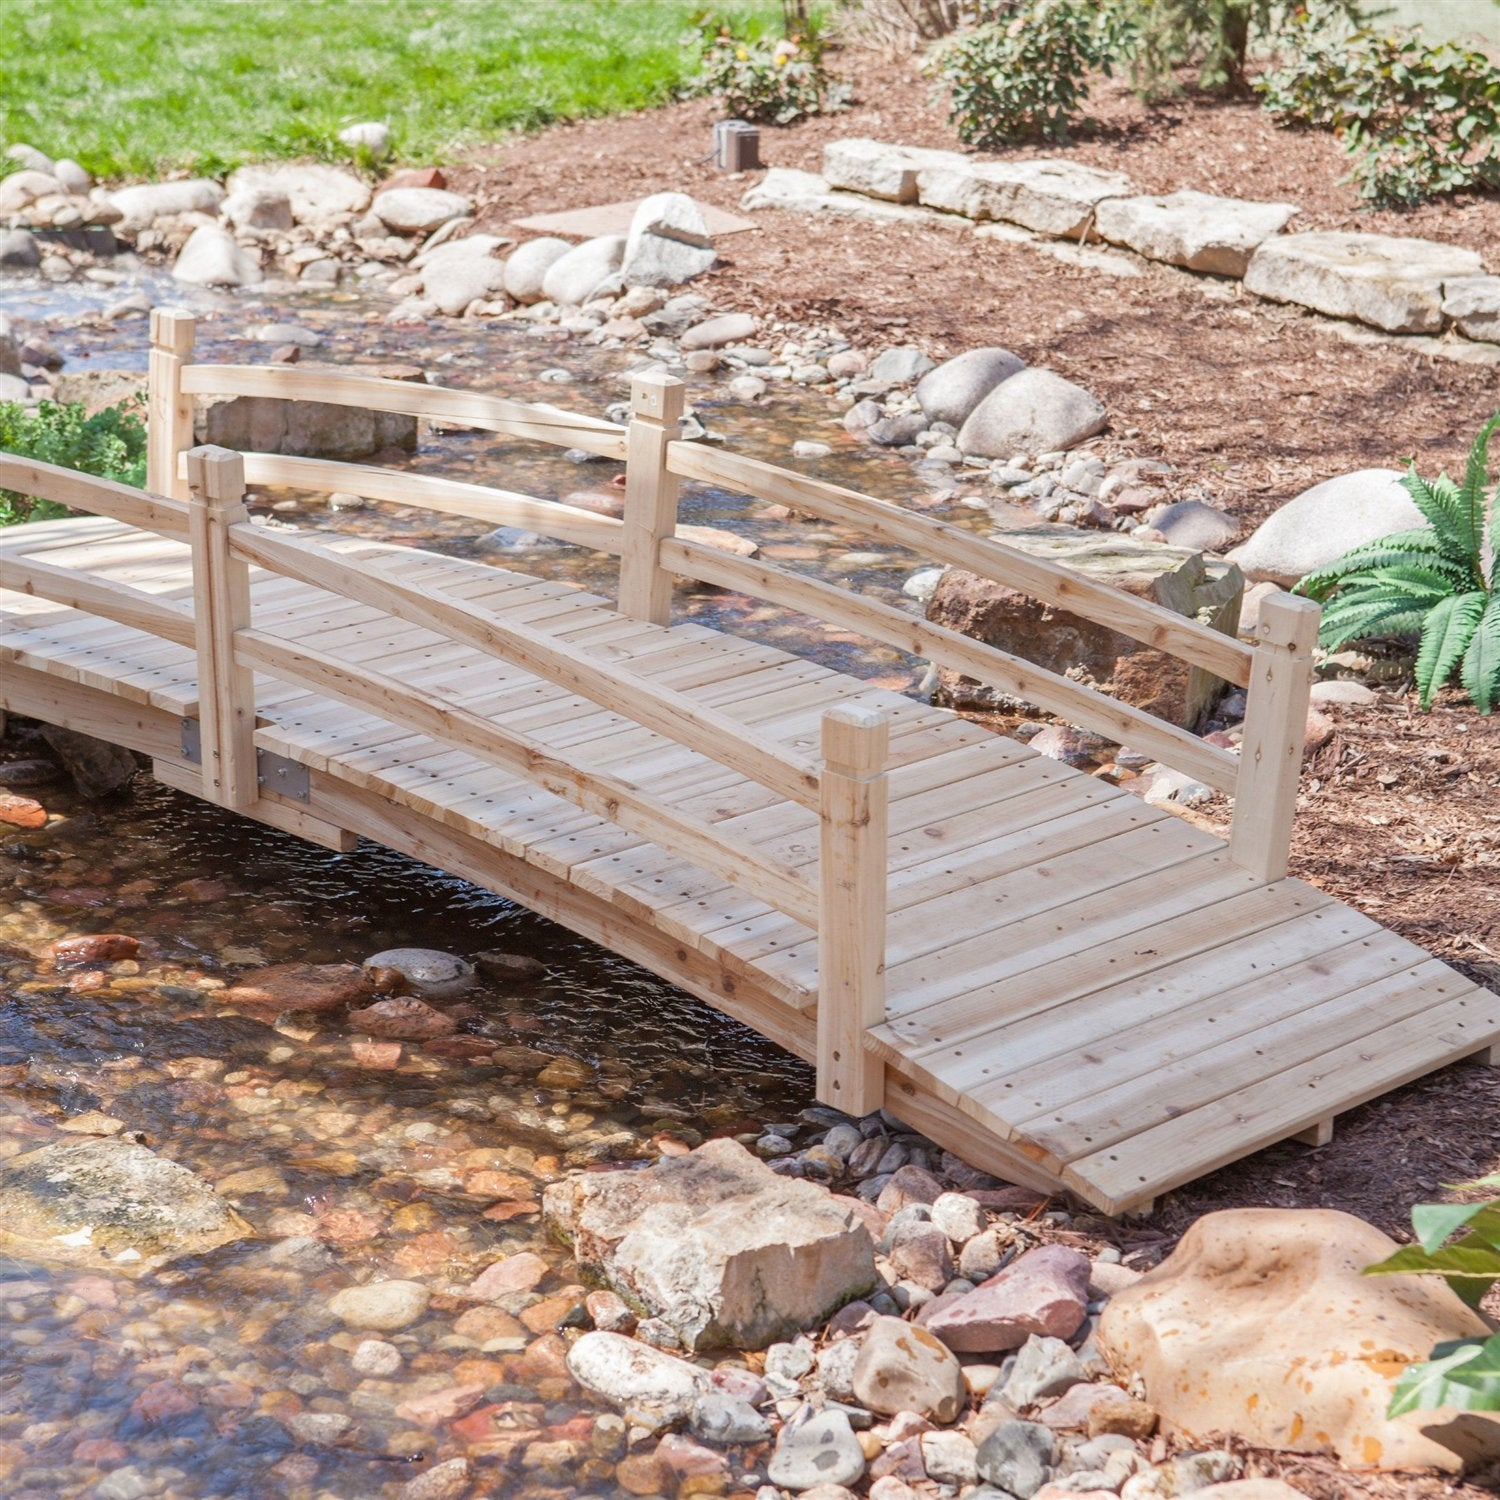 10-Ft Outdoor Garden Bridge in Weather Resistant Unfinished Fir Wood